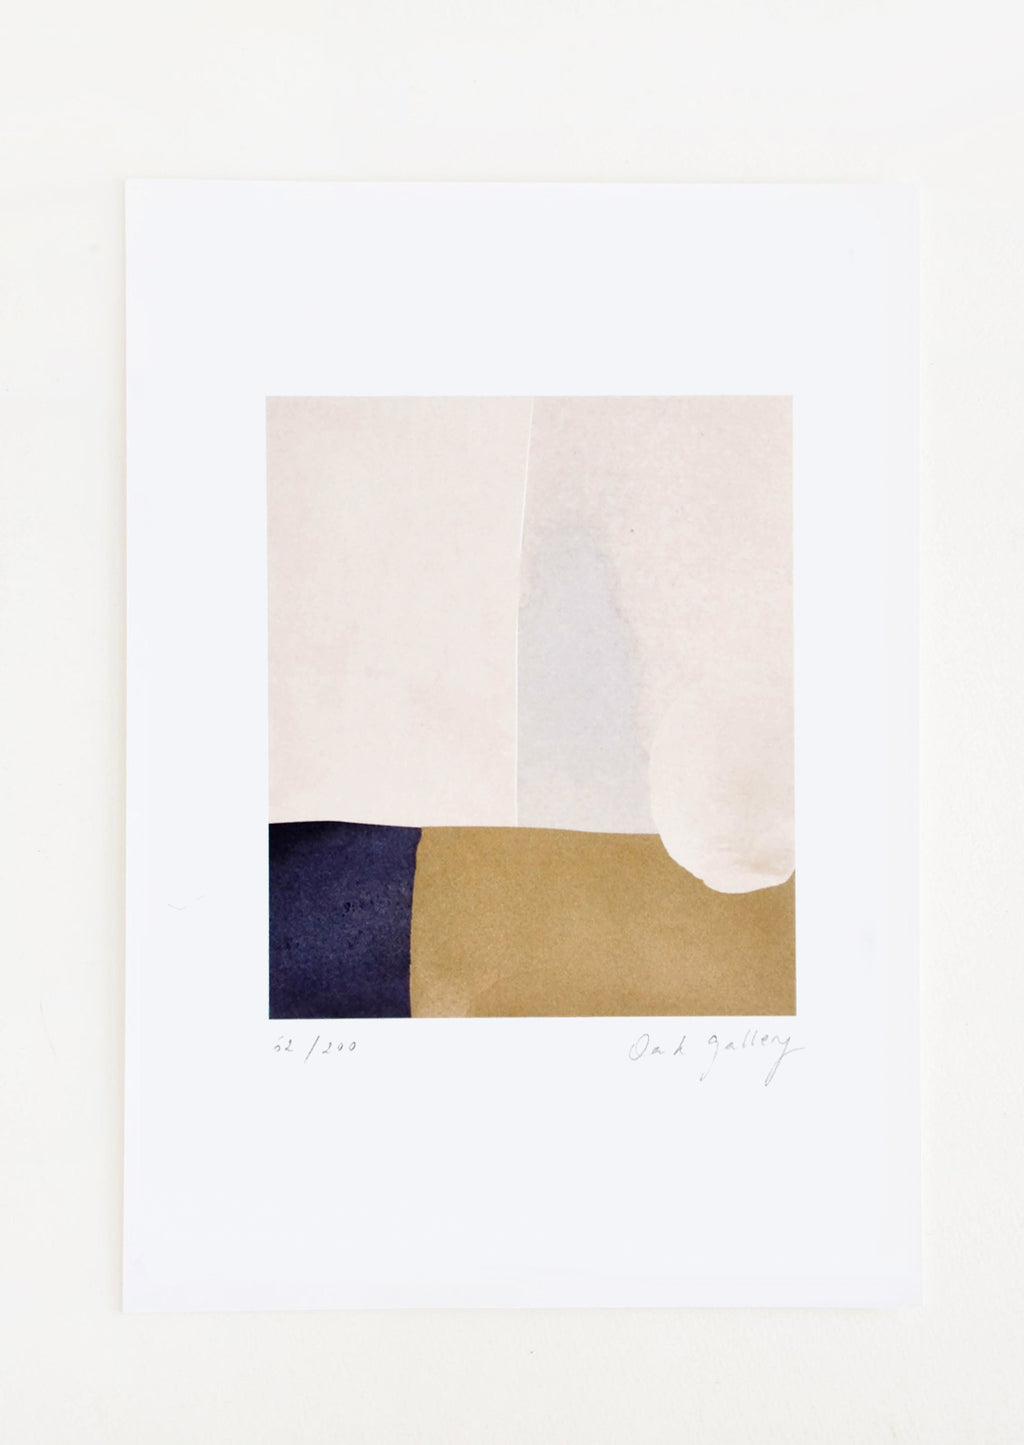 1: Abstract art print featuring composition in neutral hues